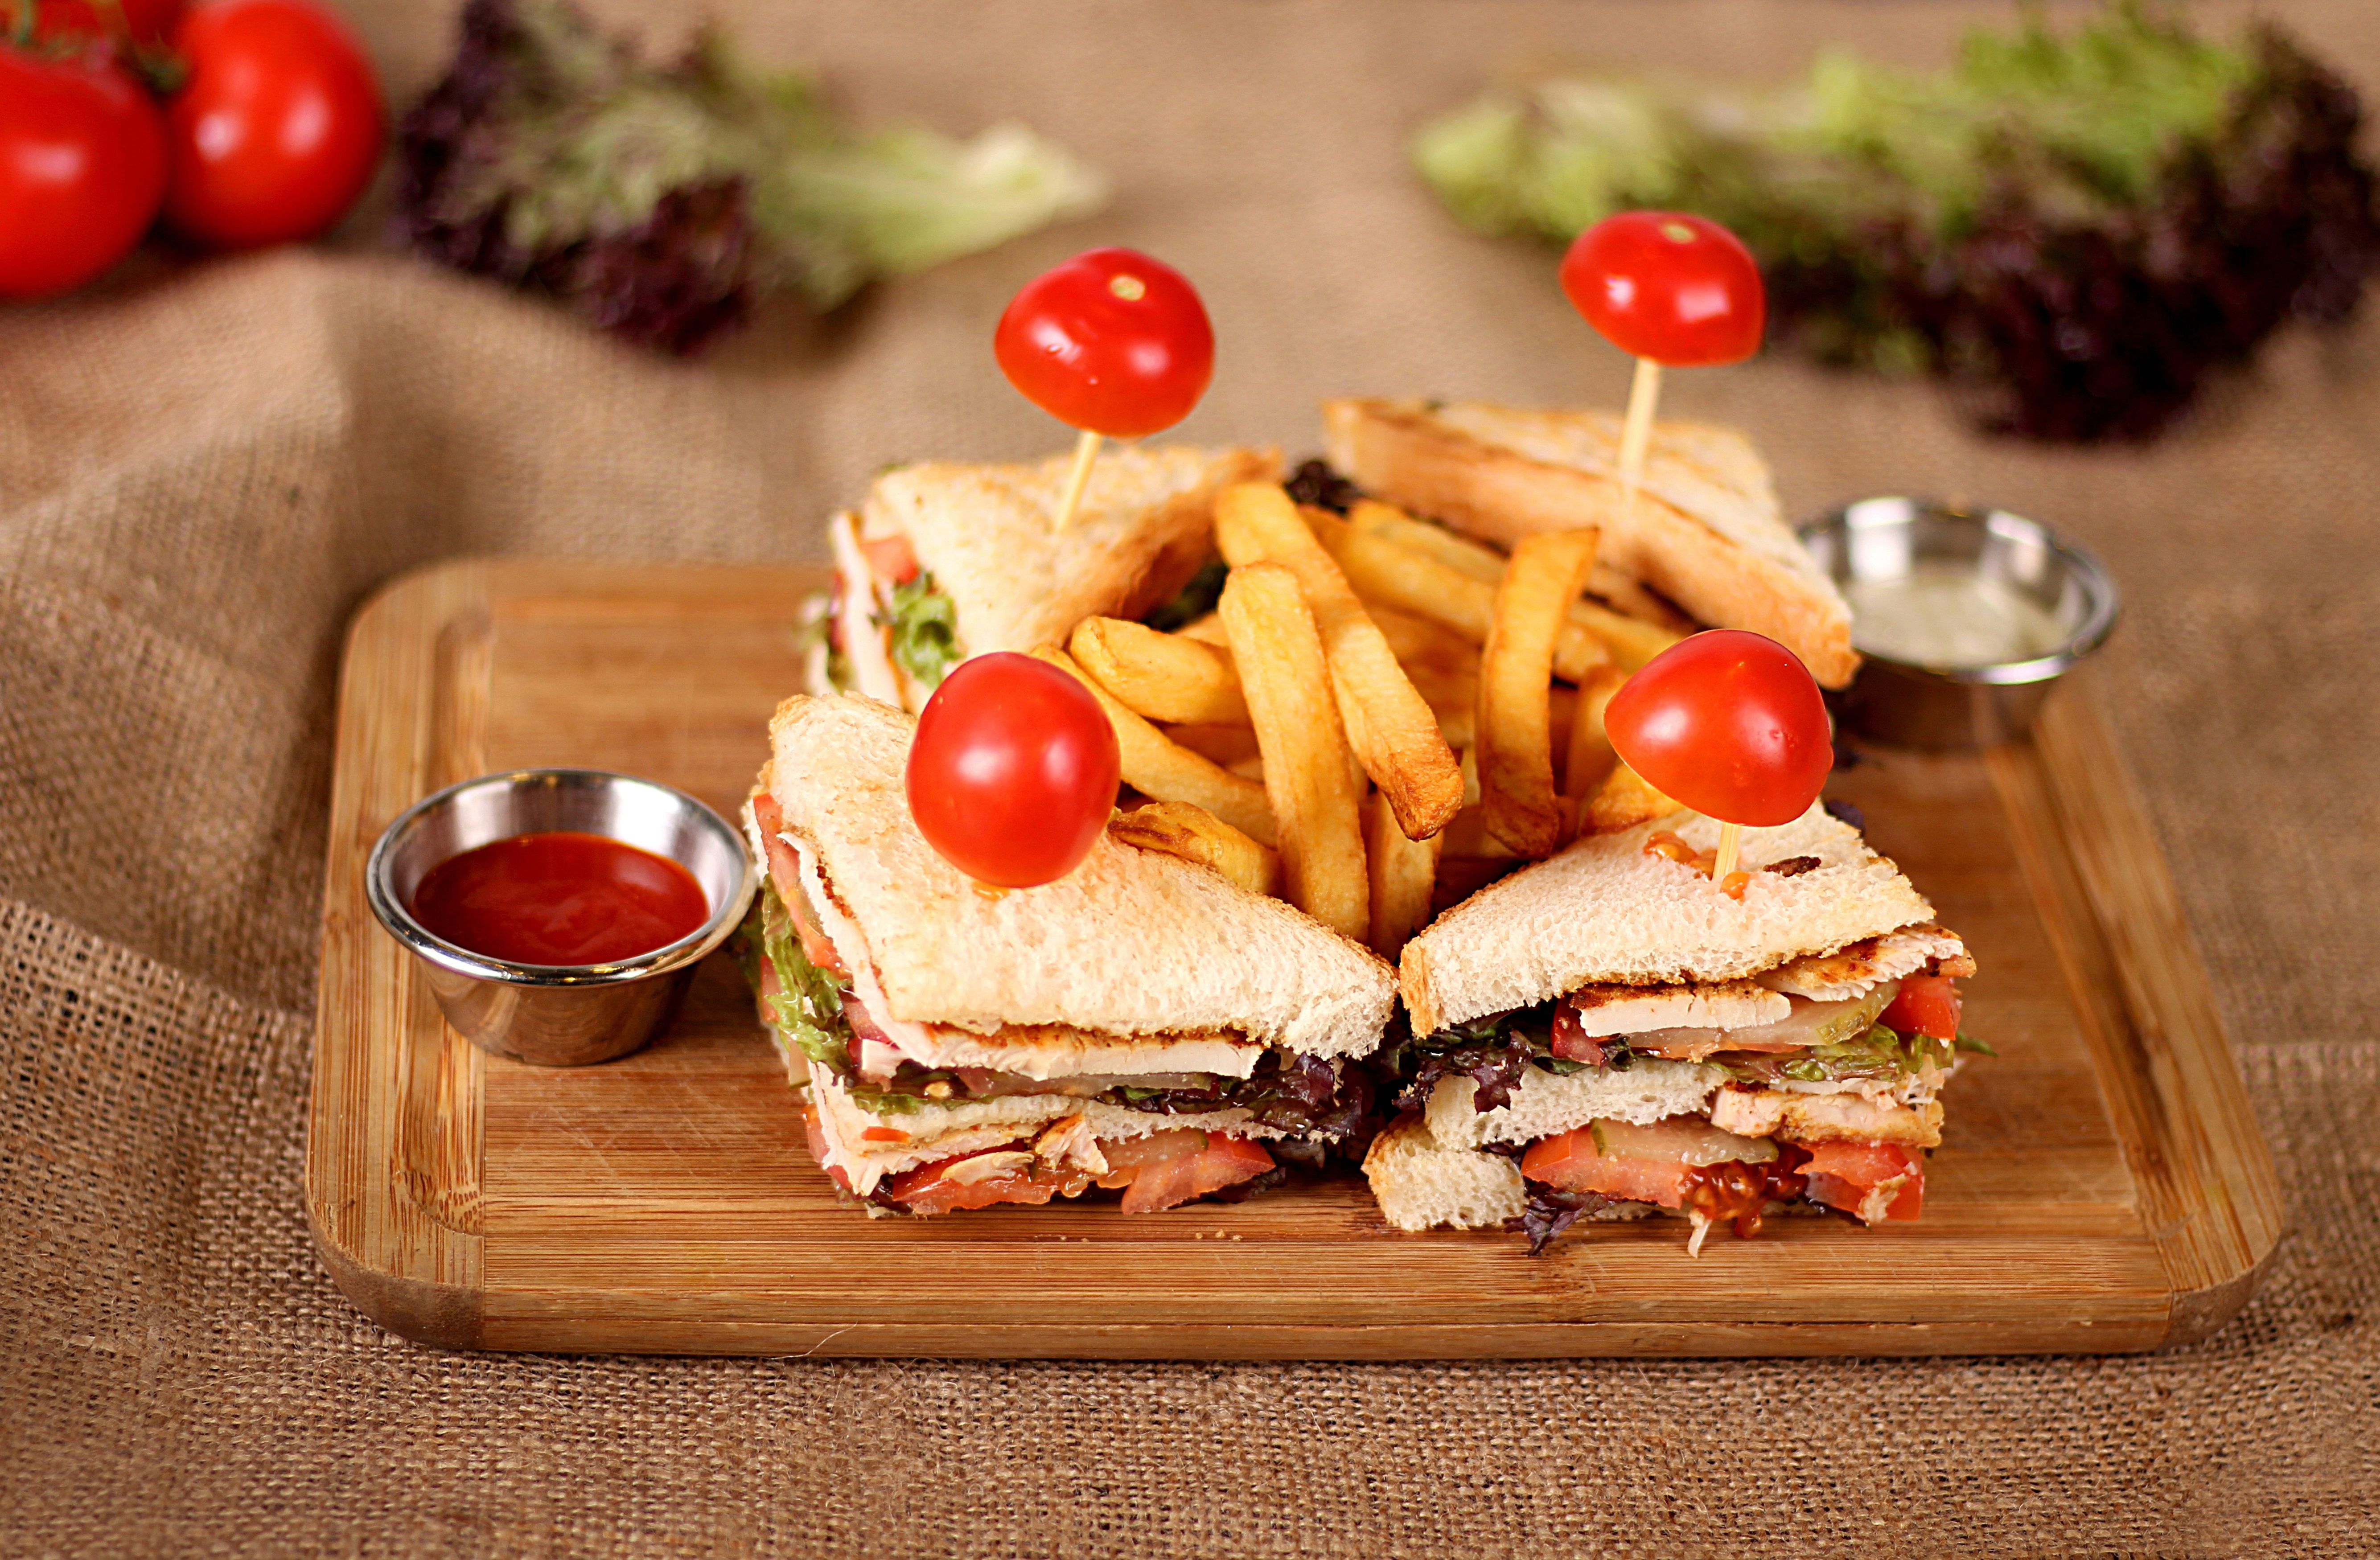 finger sandwiches with tomatoes sugar.jpg